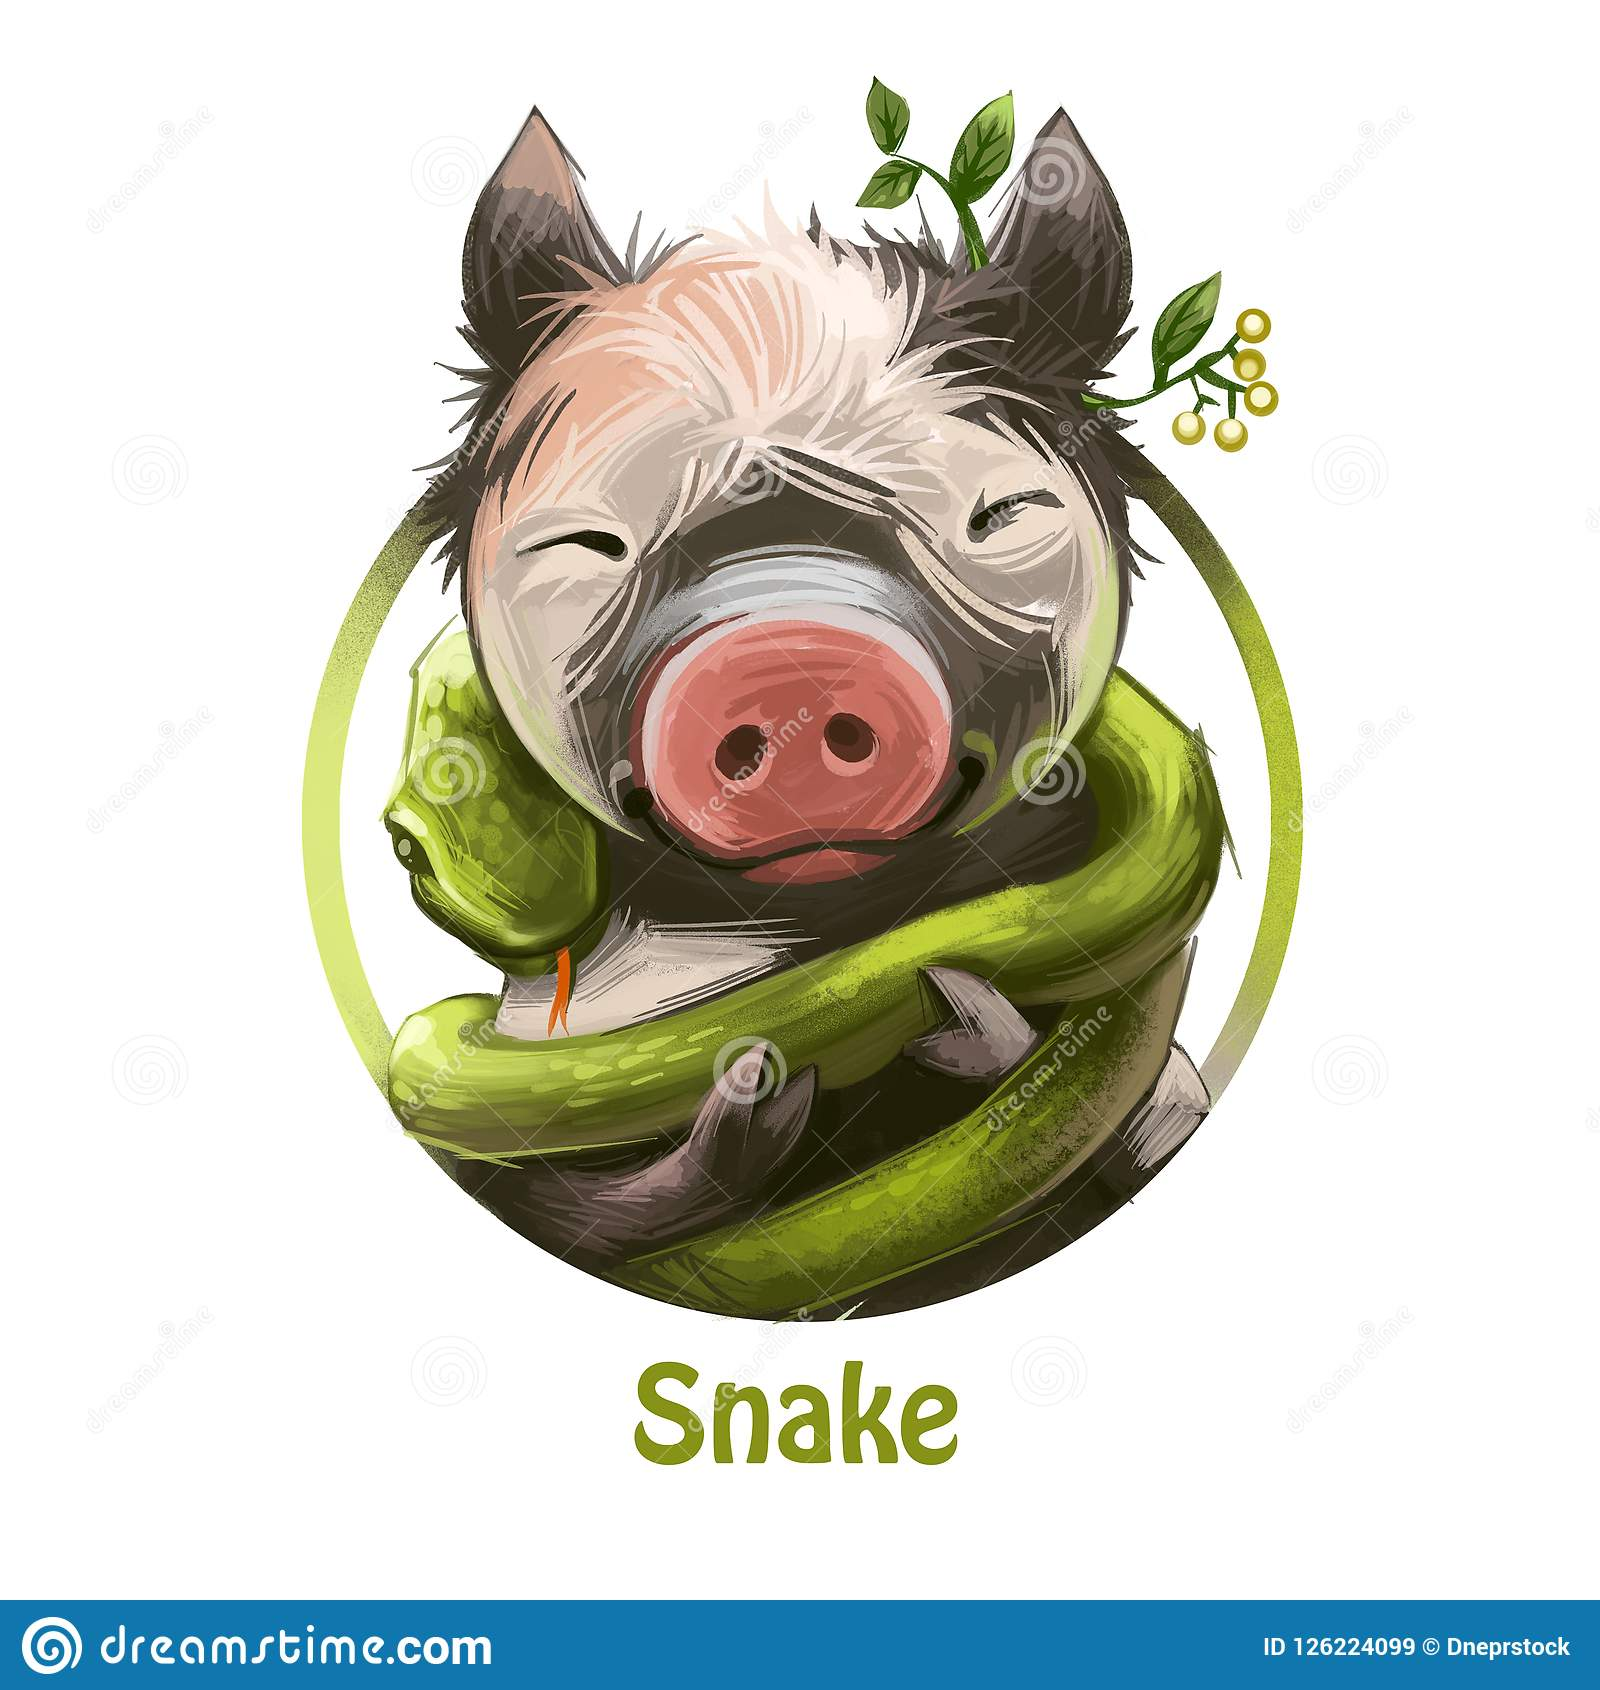 Snake Curling Around Smiling Piglet With Plant And Leaves By